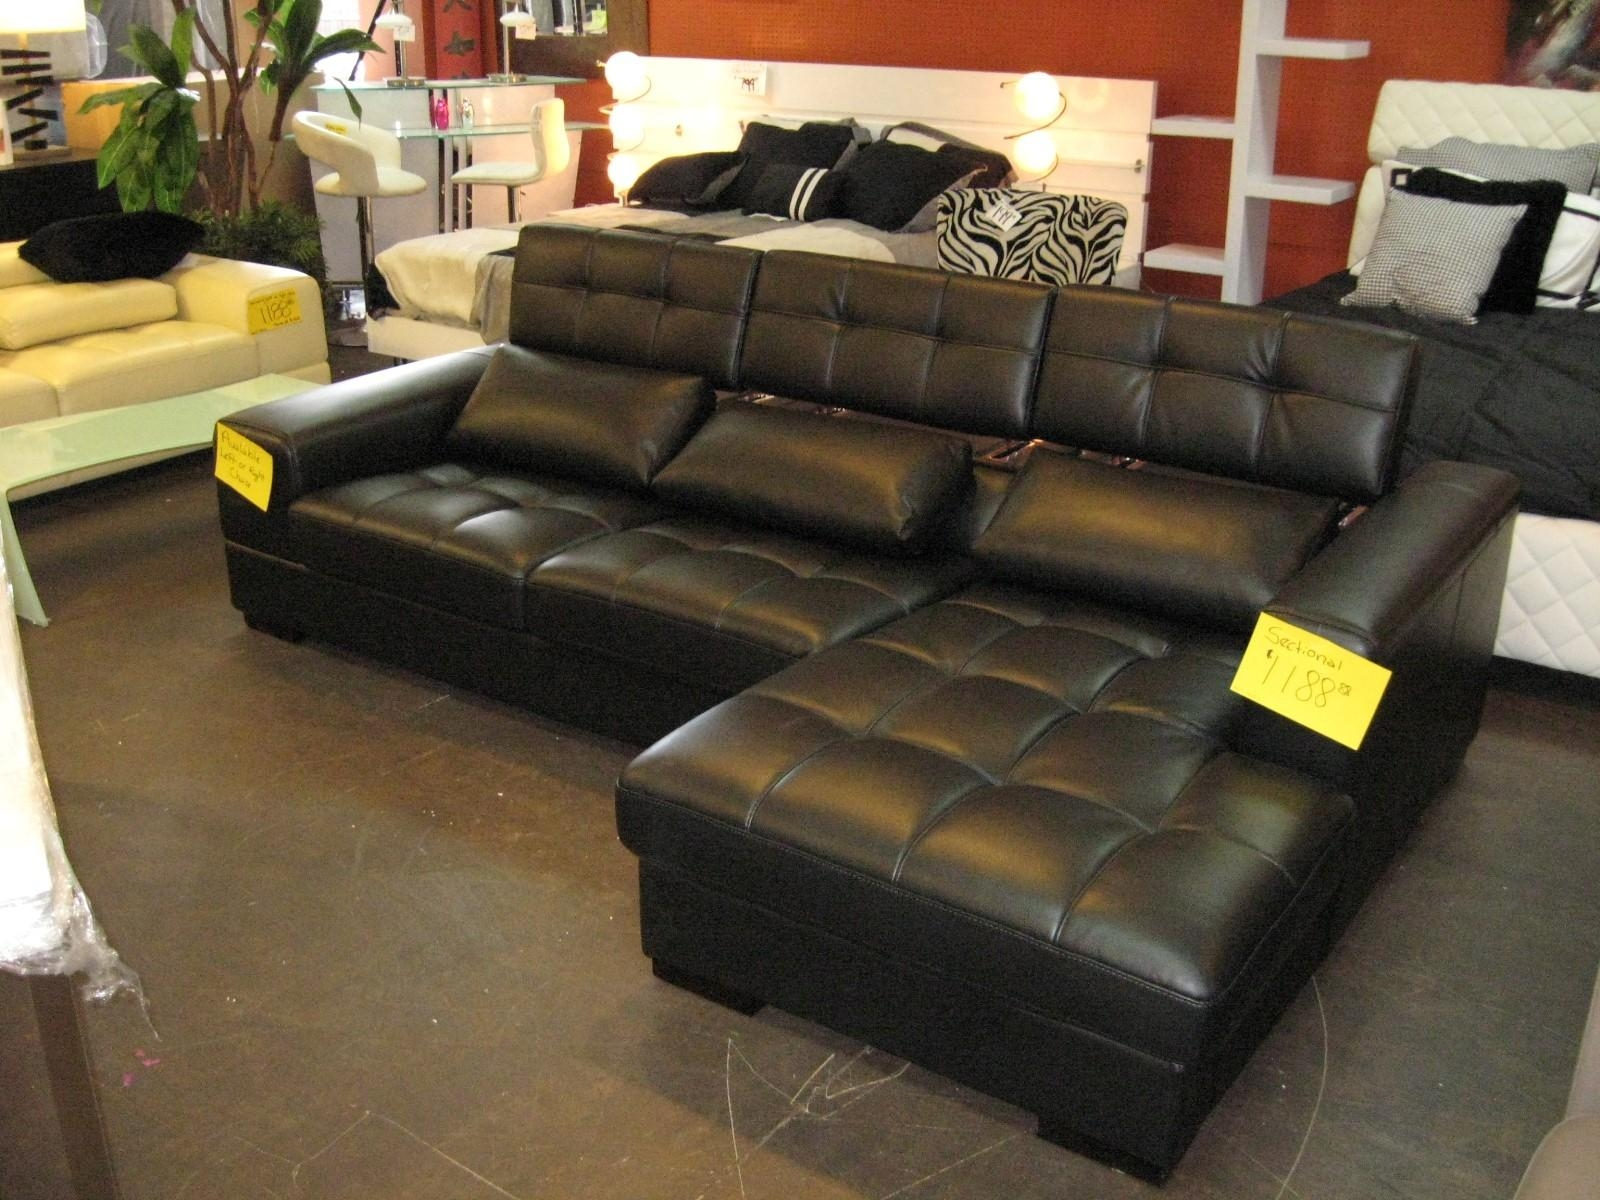 Furniture & Rug: Cheap Sectional Couches For Home Furniture Idea Intended For Leather Modular Sectional Sofas (Image 4 of 20)